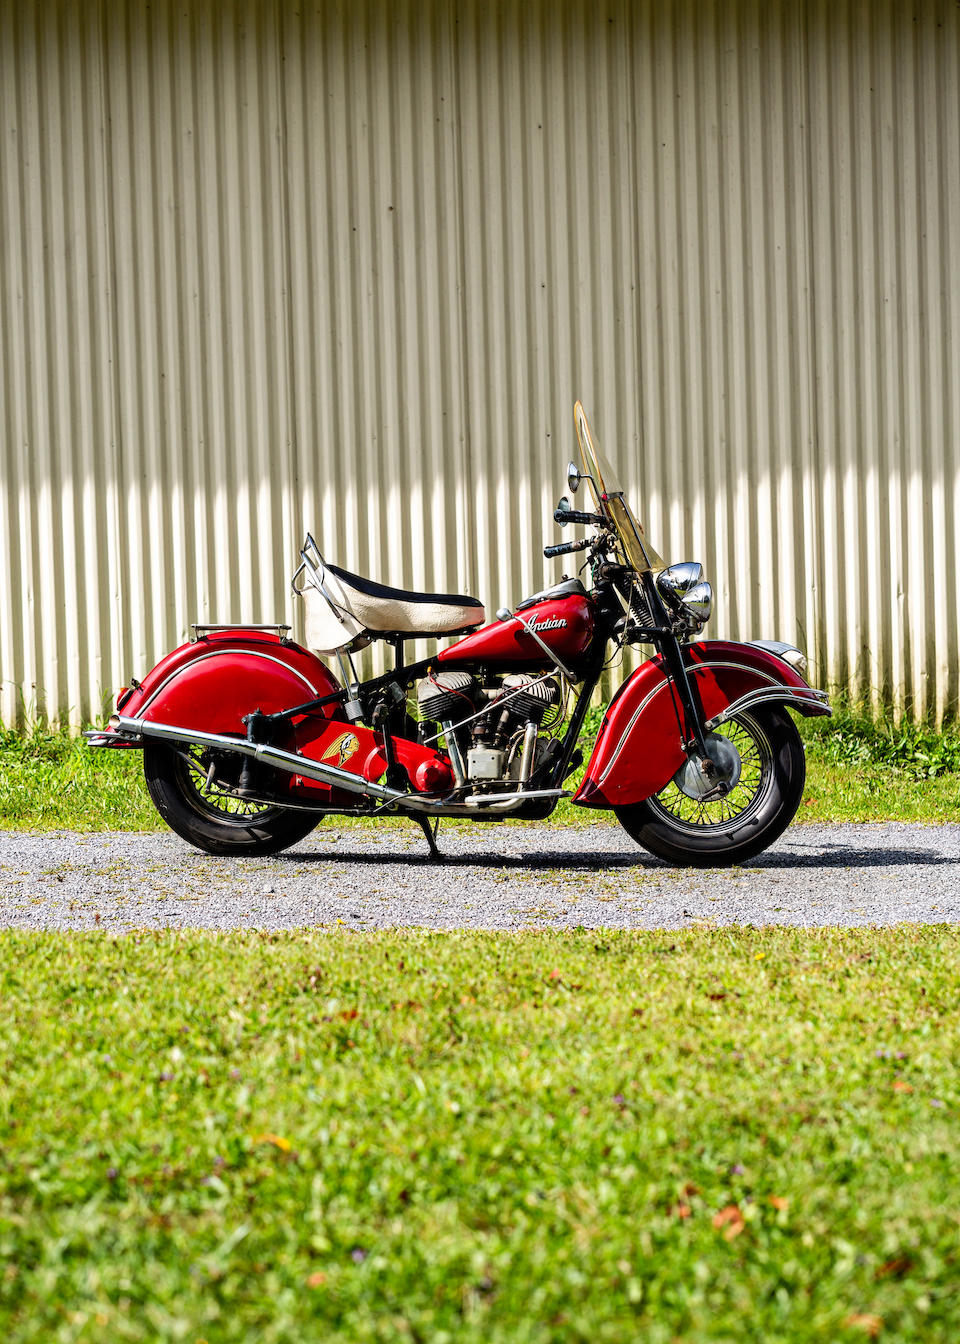 1947 Indian 74ci Chief Frame no. 3474109 Engine no. DG4109